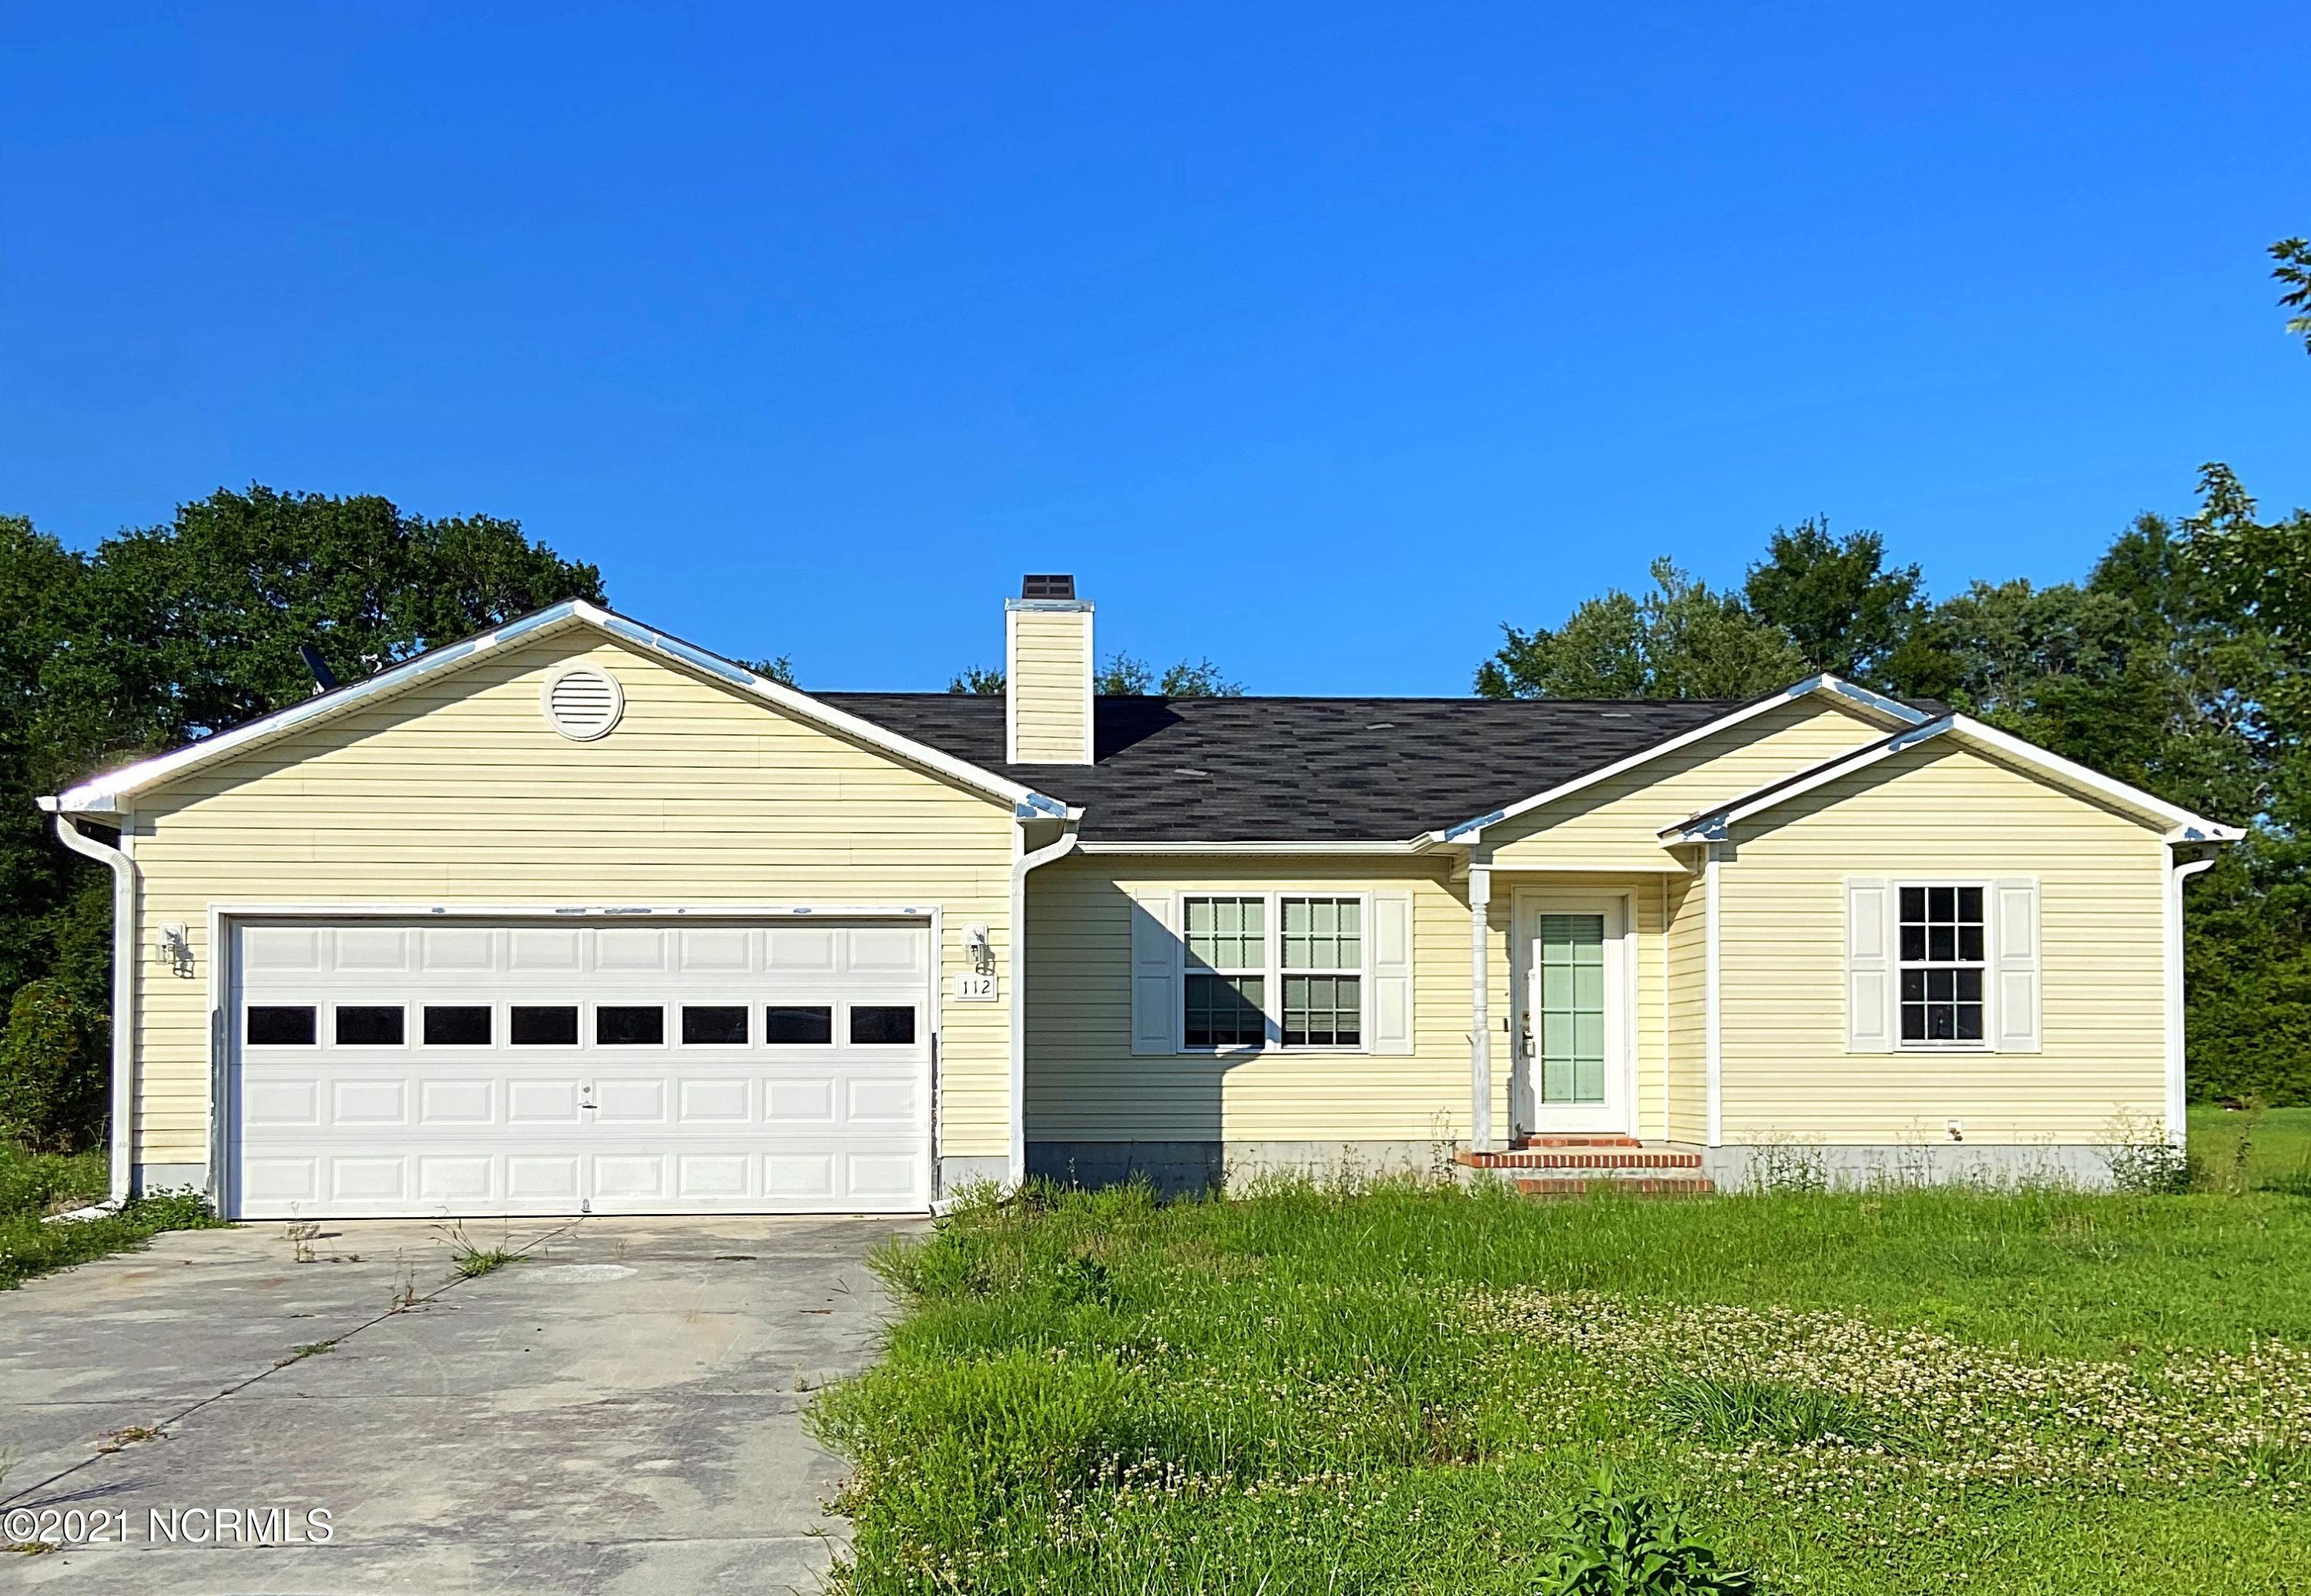 Three bedroom, two bathroom home just minutes away from the OAJ airport! There is a shed in the back yard that will be perfect for storage! This house has lots of potential, it just needs a little bit of TLC. Home is being sold AS IS. Please contact listing agent with any questions!